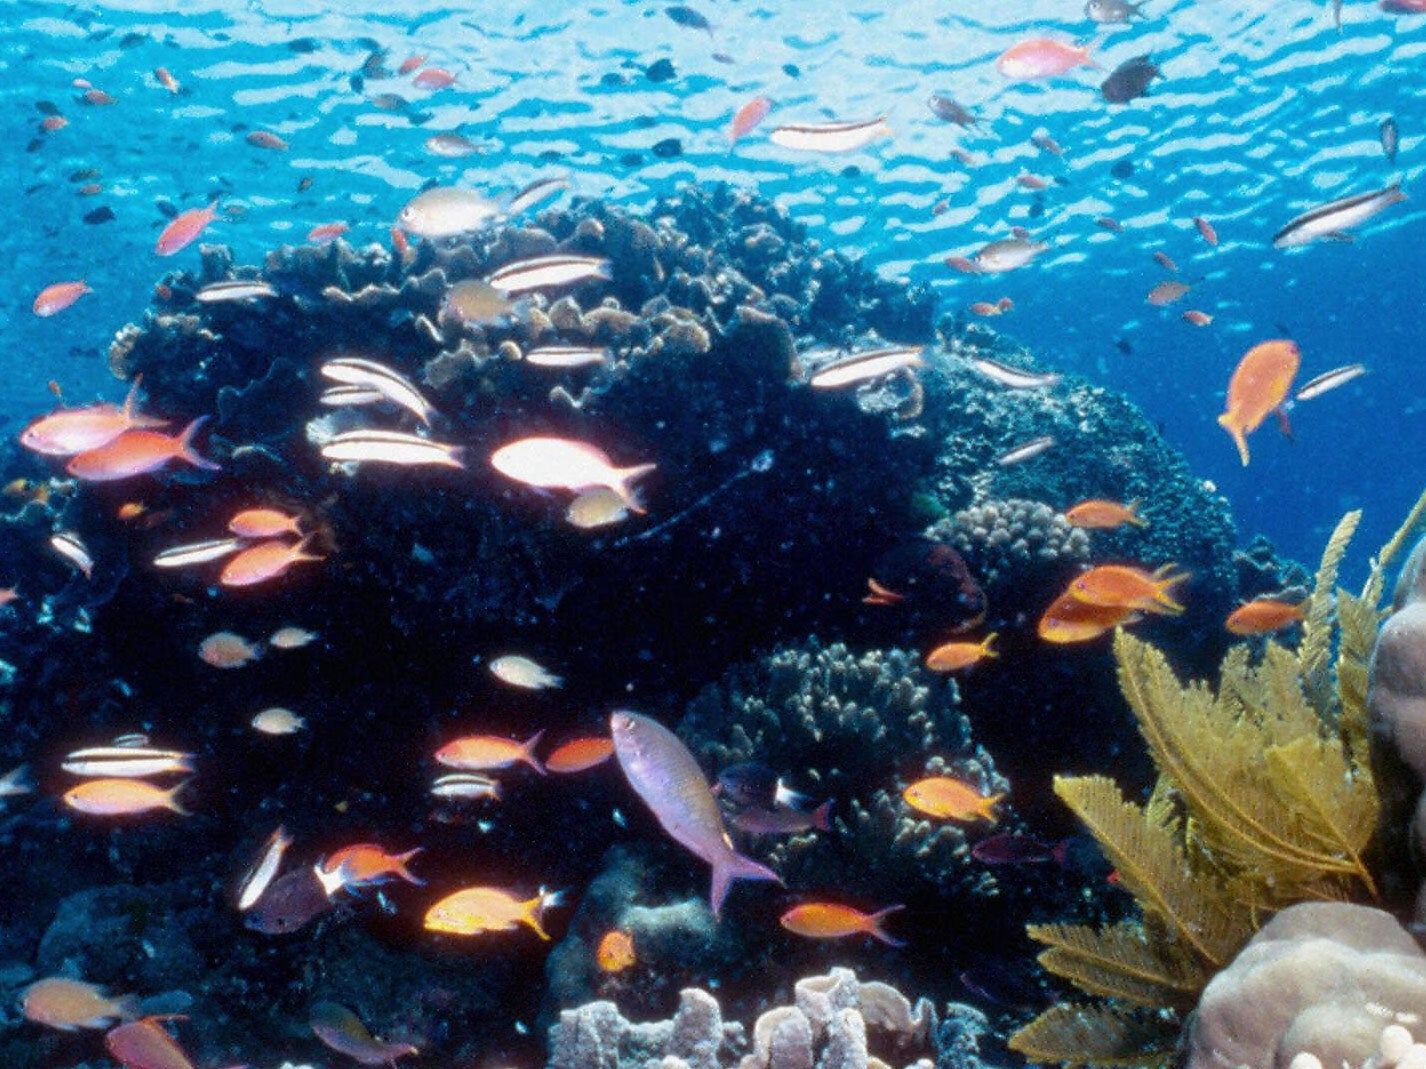 coral reefs our disappearing beauty Coral reefs, our disappearing beauty coral reefs coral reefs thailand vs indonesia among the hidden--reader's report changes in teenage lifestyle: indonesia.